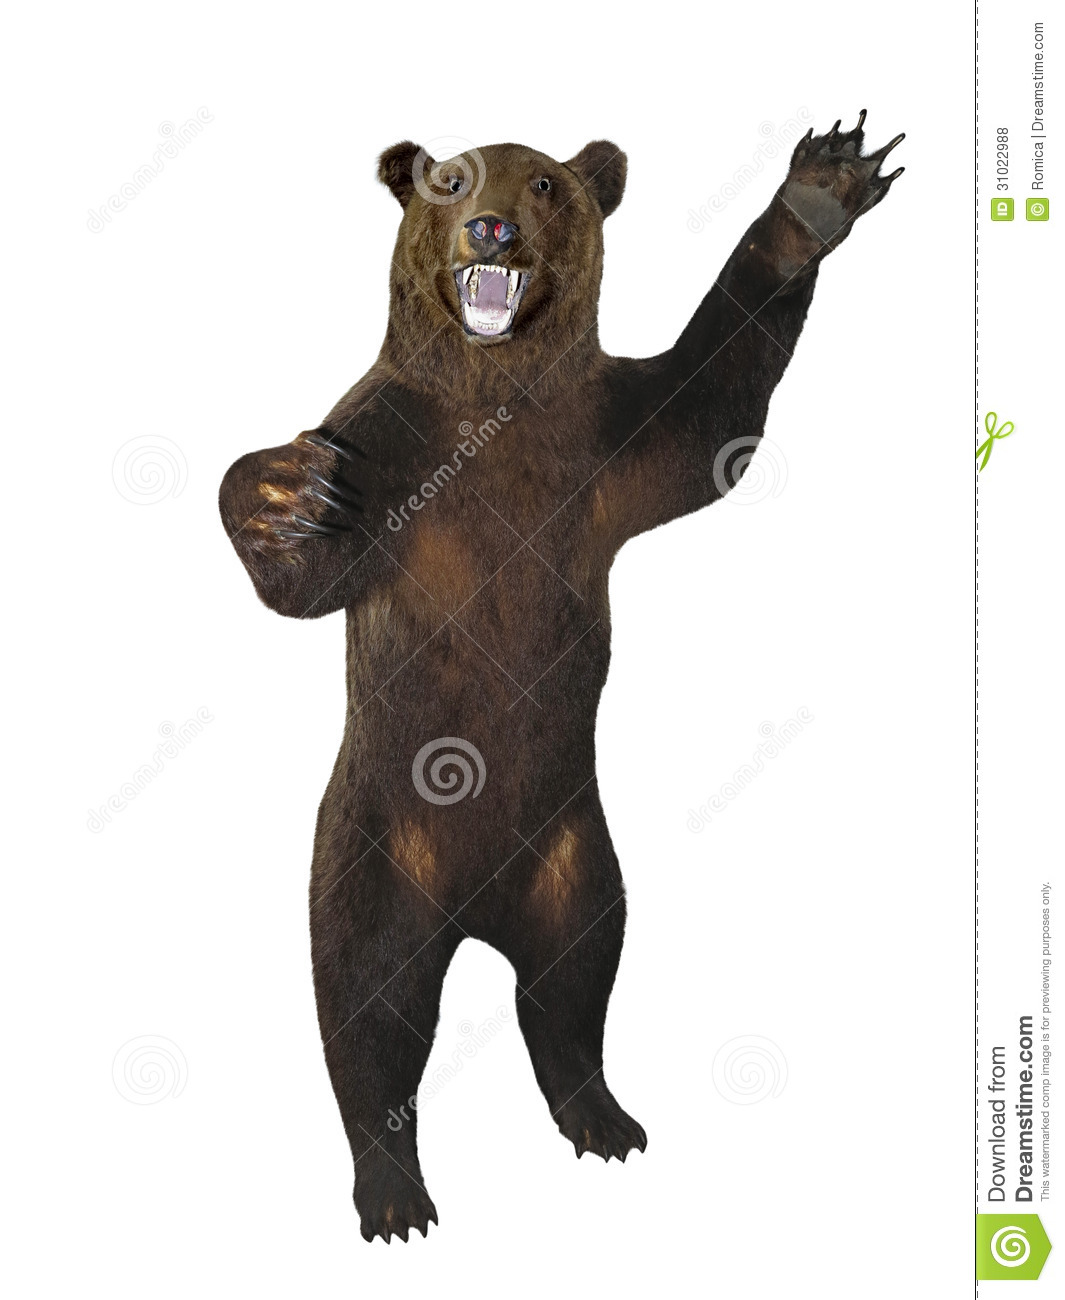 how to draw bear with open mouth